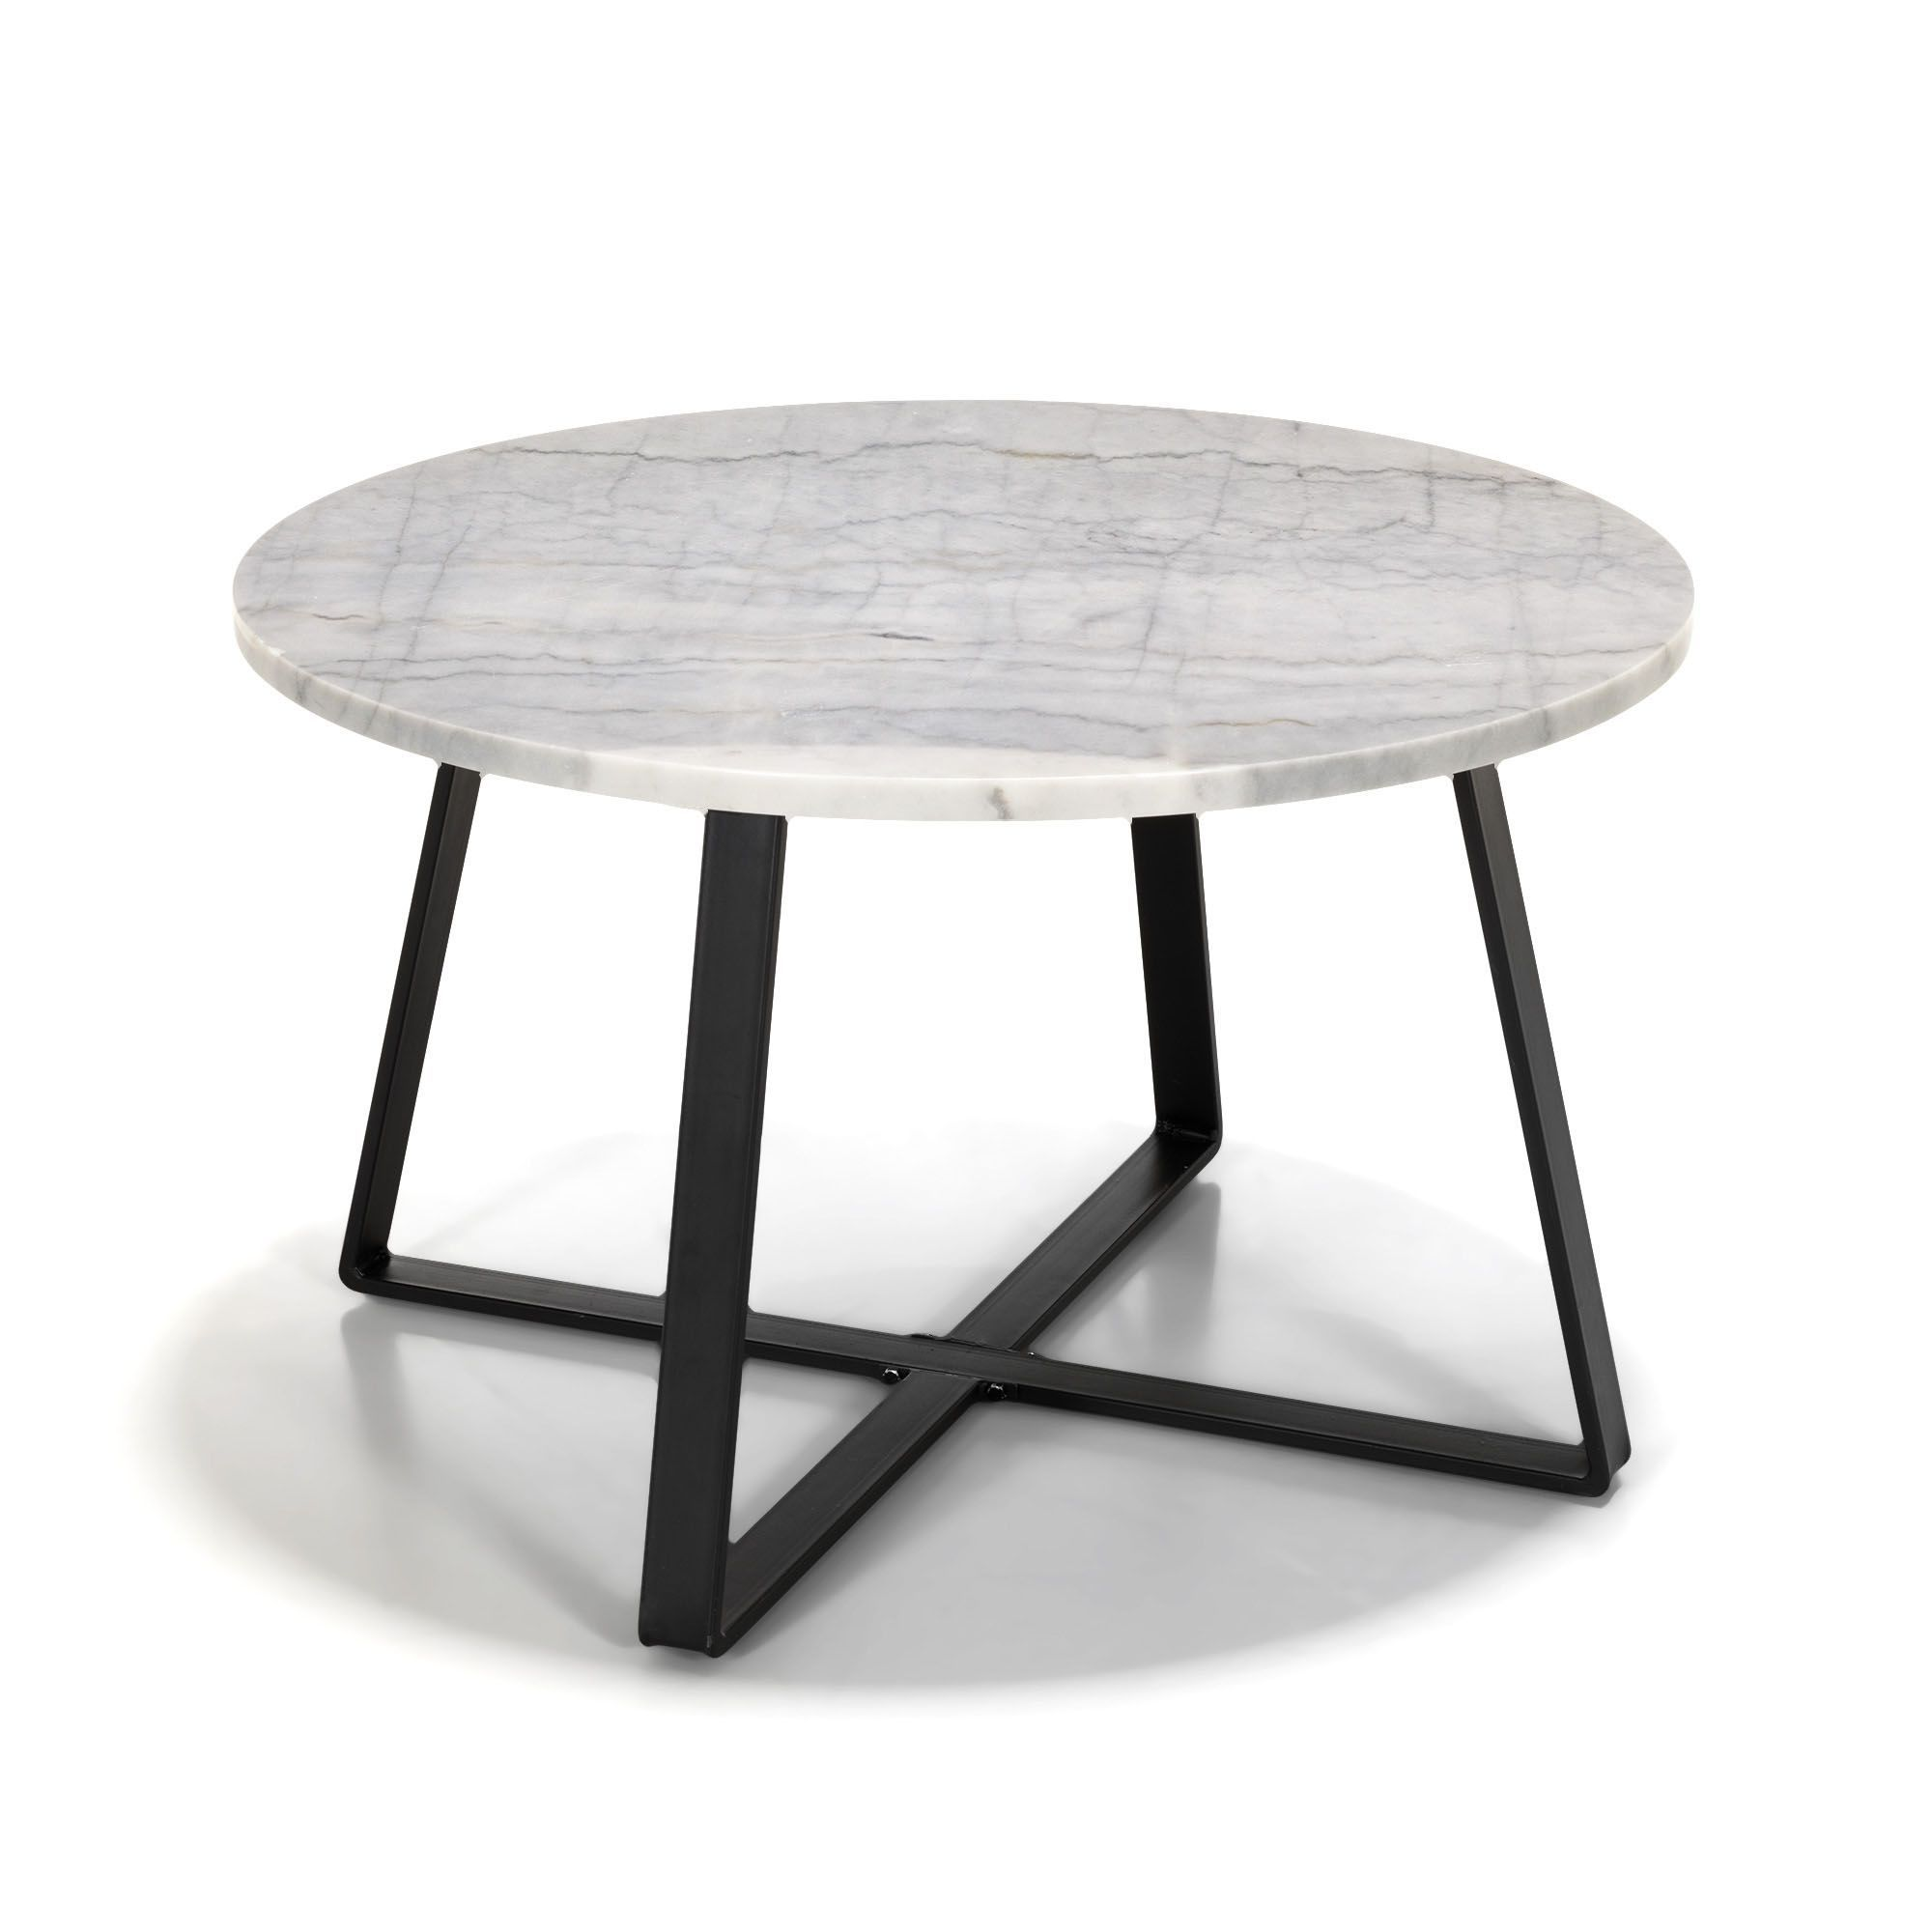 Table basse en m tal avec plateau en marbre blanc et noir for Table basse scandinave marbre